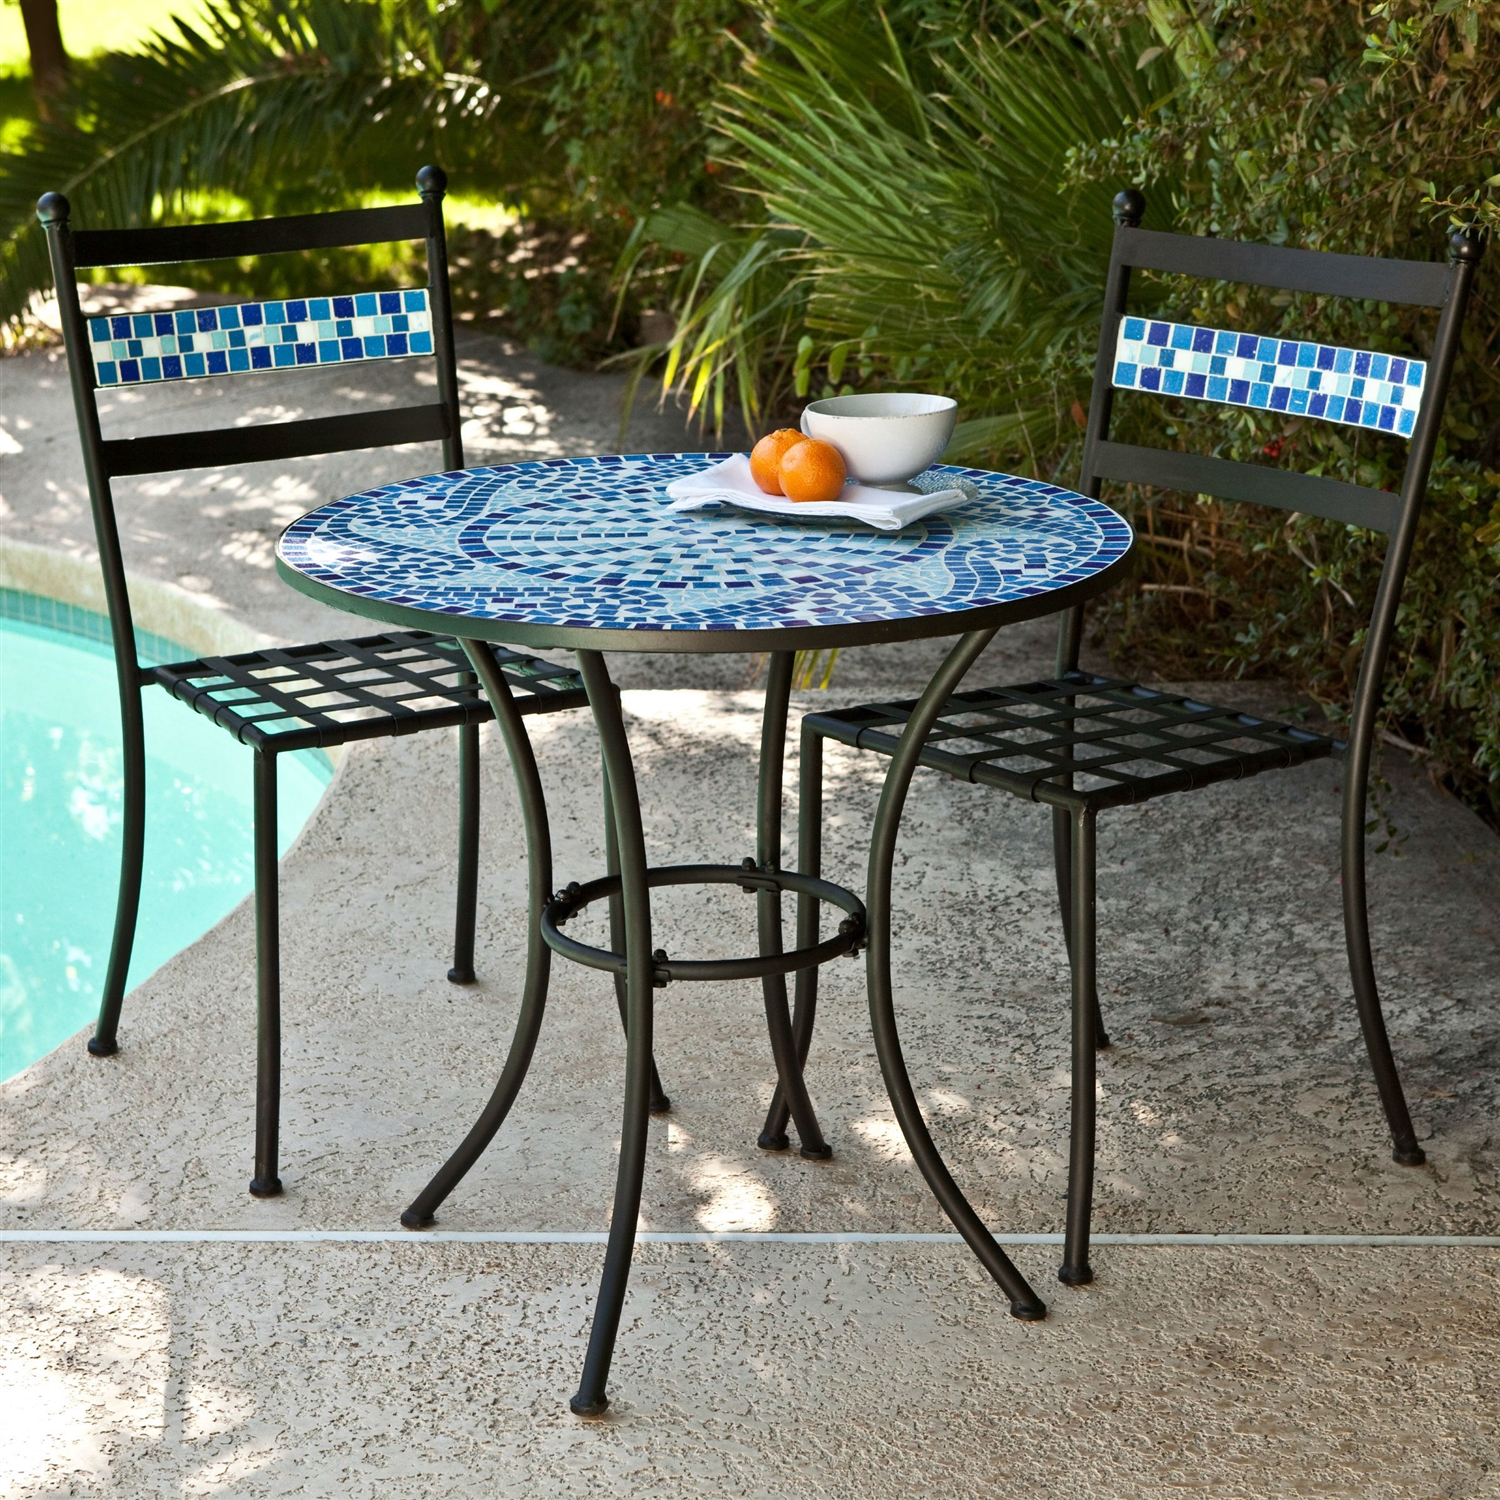 Outdoor 3 Piece Aqua Blue Mosaic Tiles Patio Furniture Bistro Set